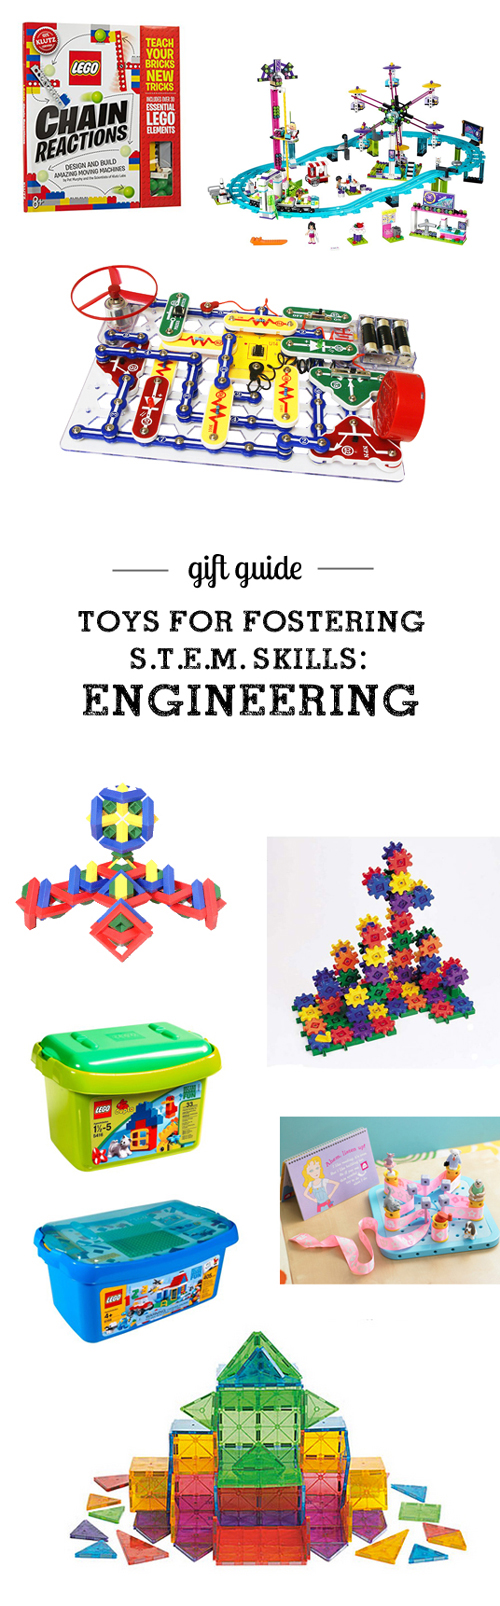 MPMK Gift Guide Top Toys For Building STEM Skills